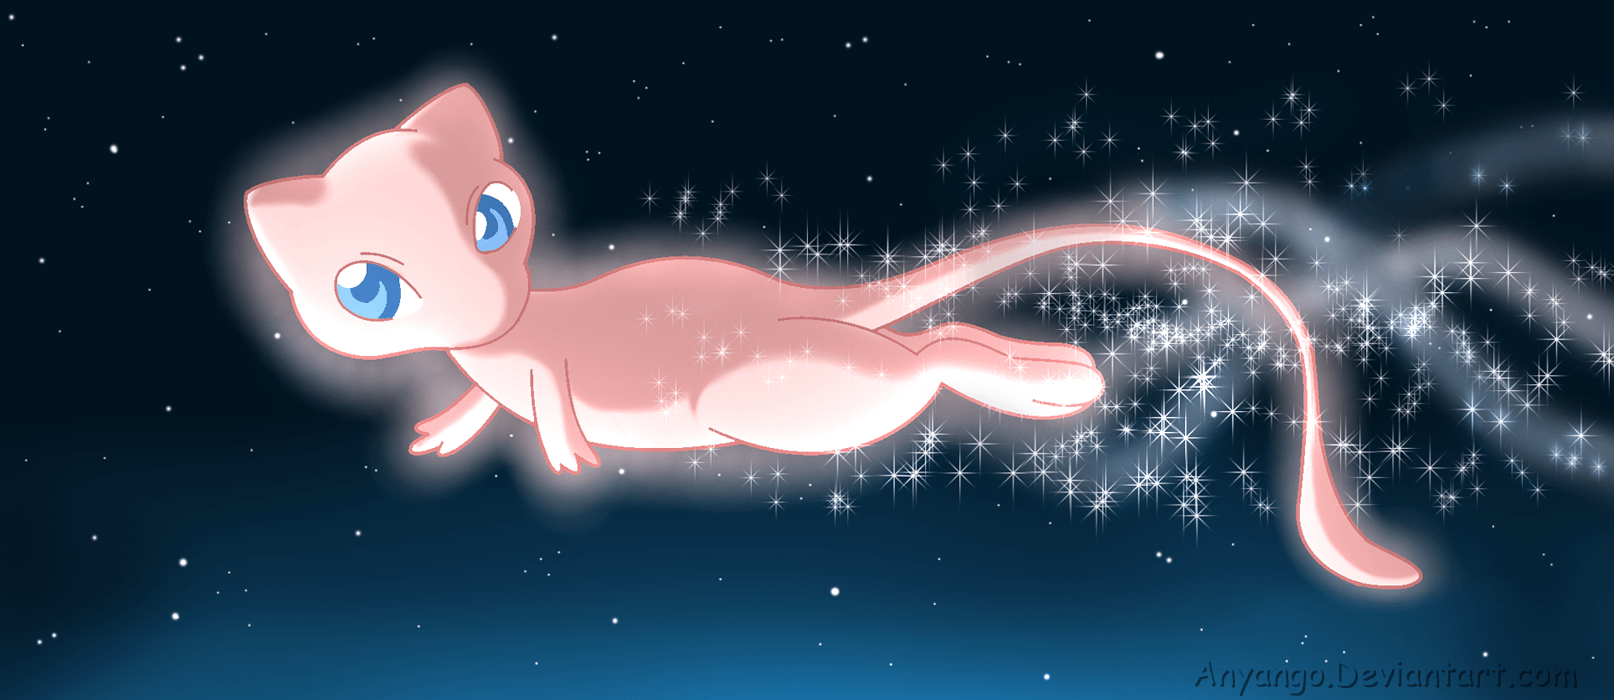 Mew (pokemon) images ****Mew**** HD wallpaper and background ...